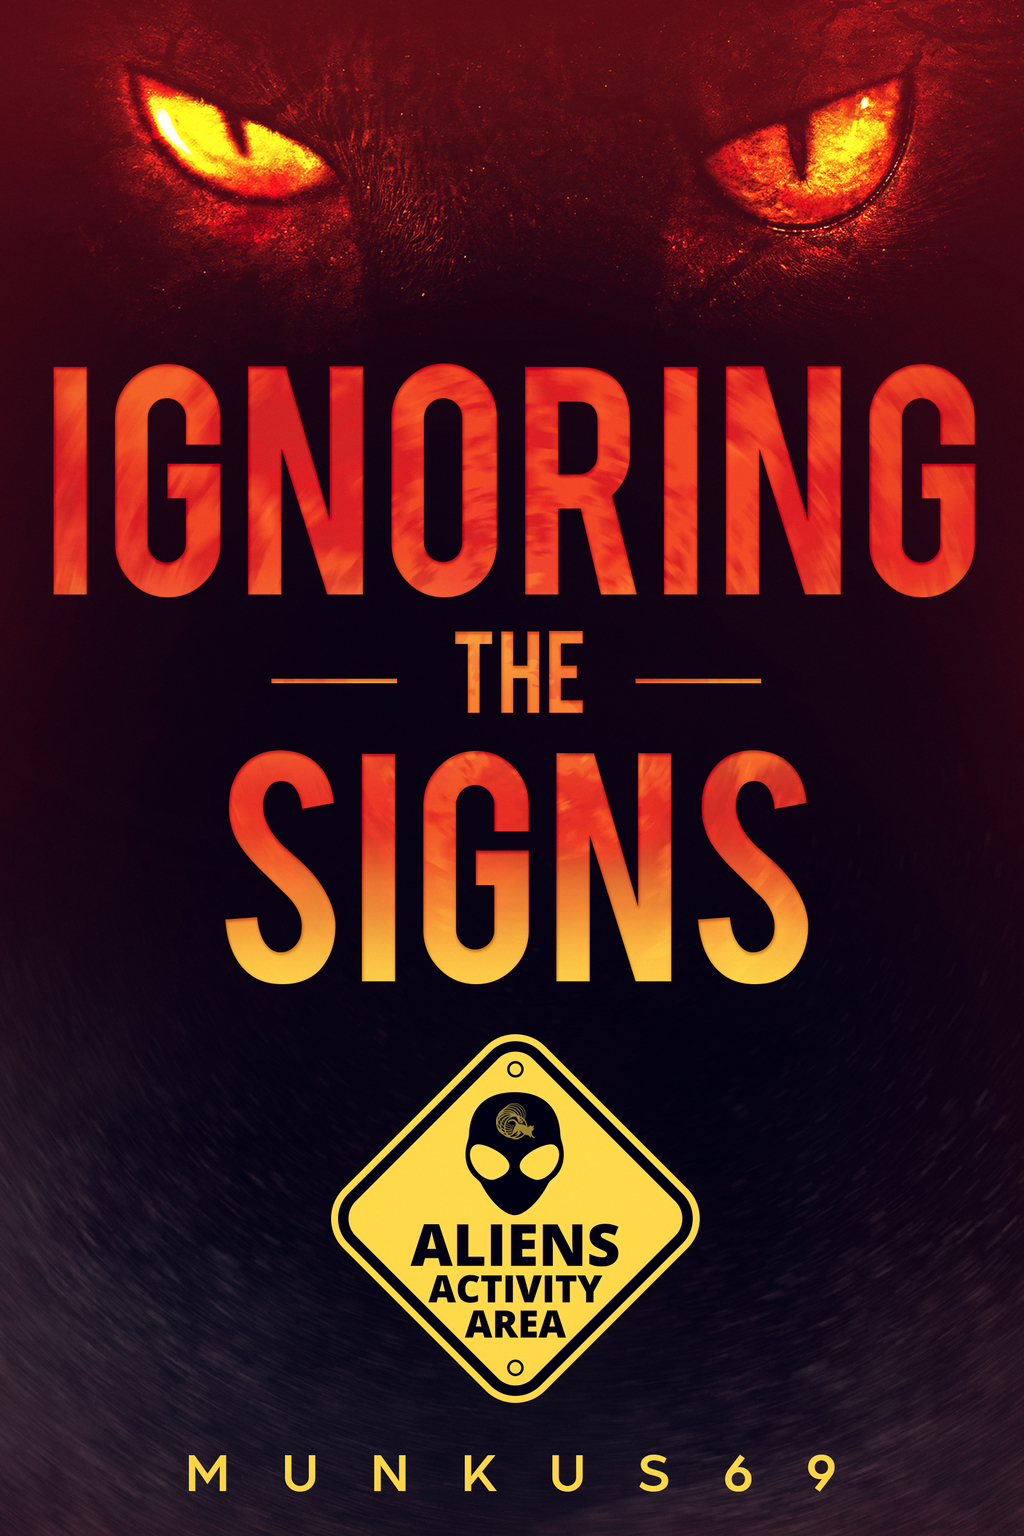 Most recent image: Ignoring the Signs - Teaser